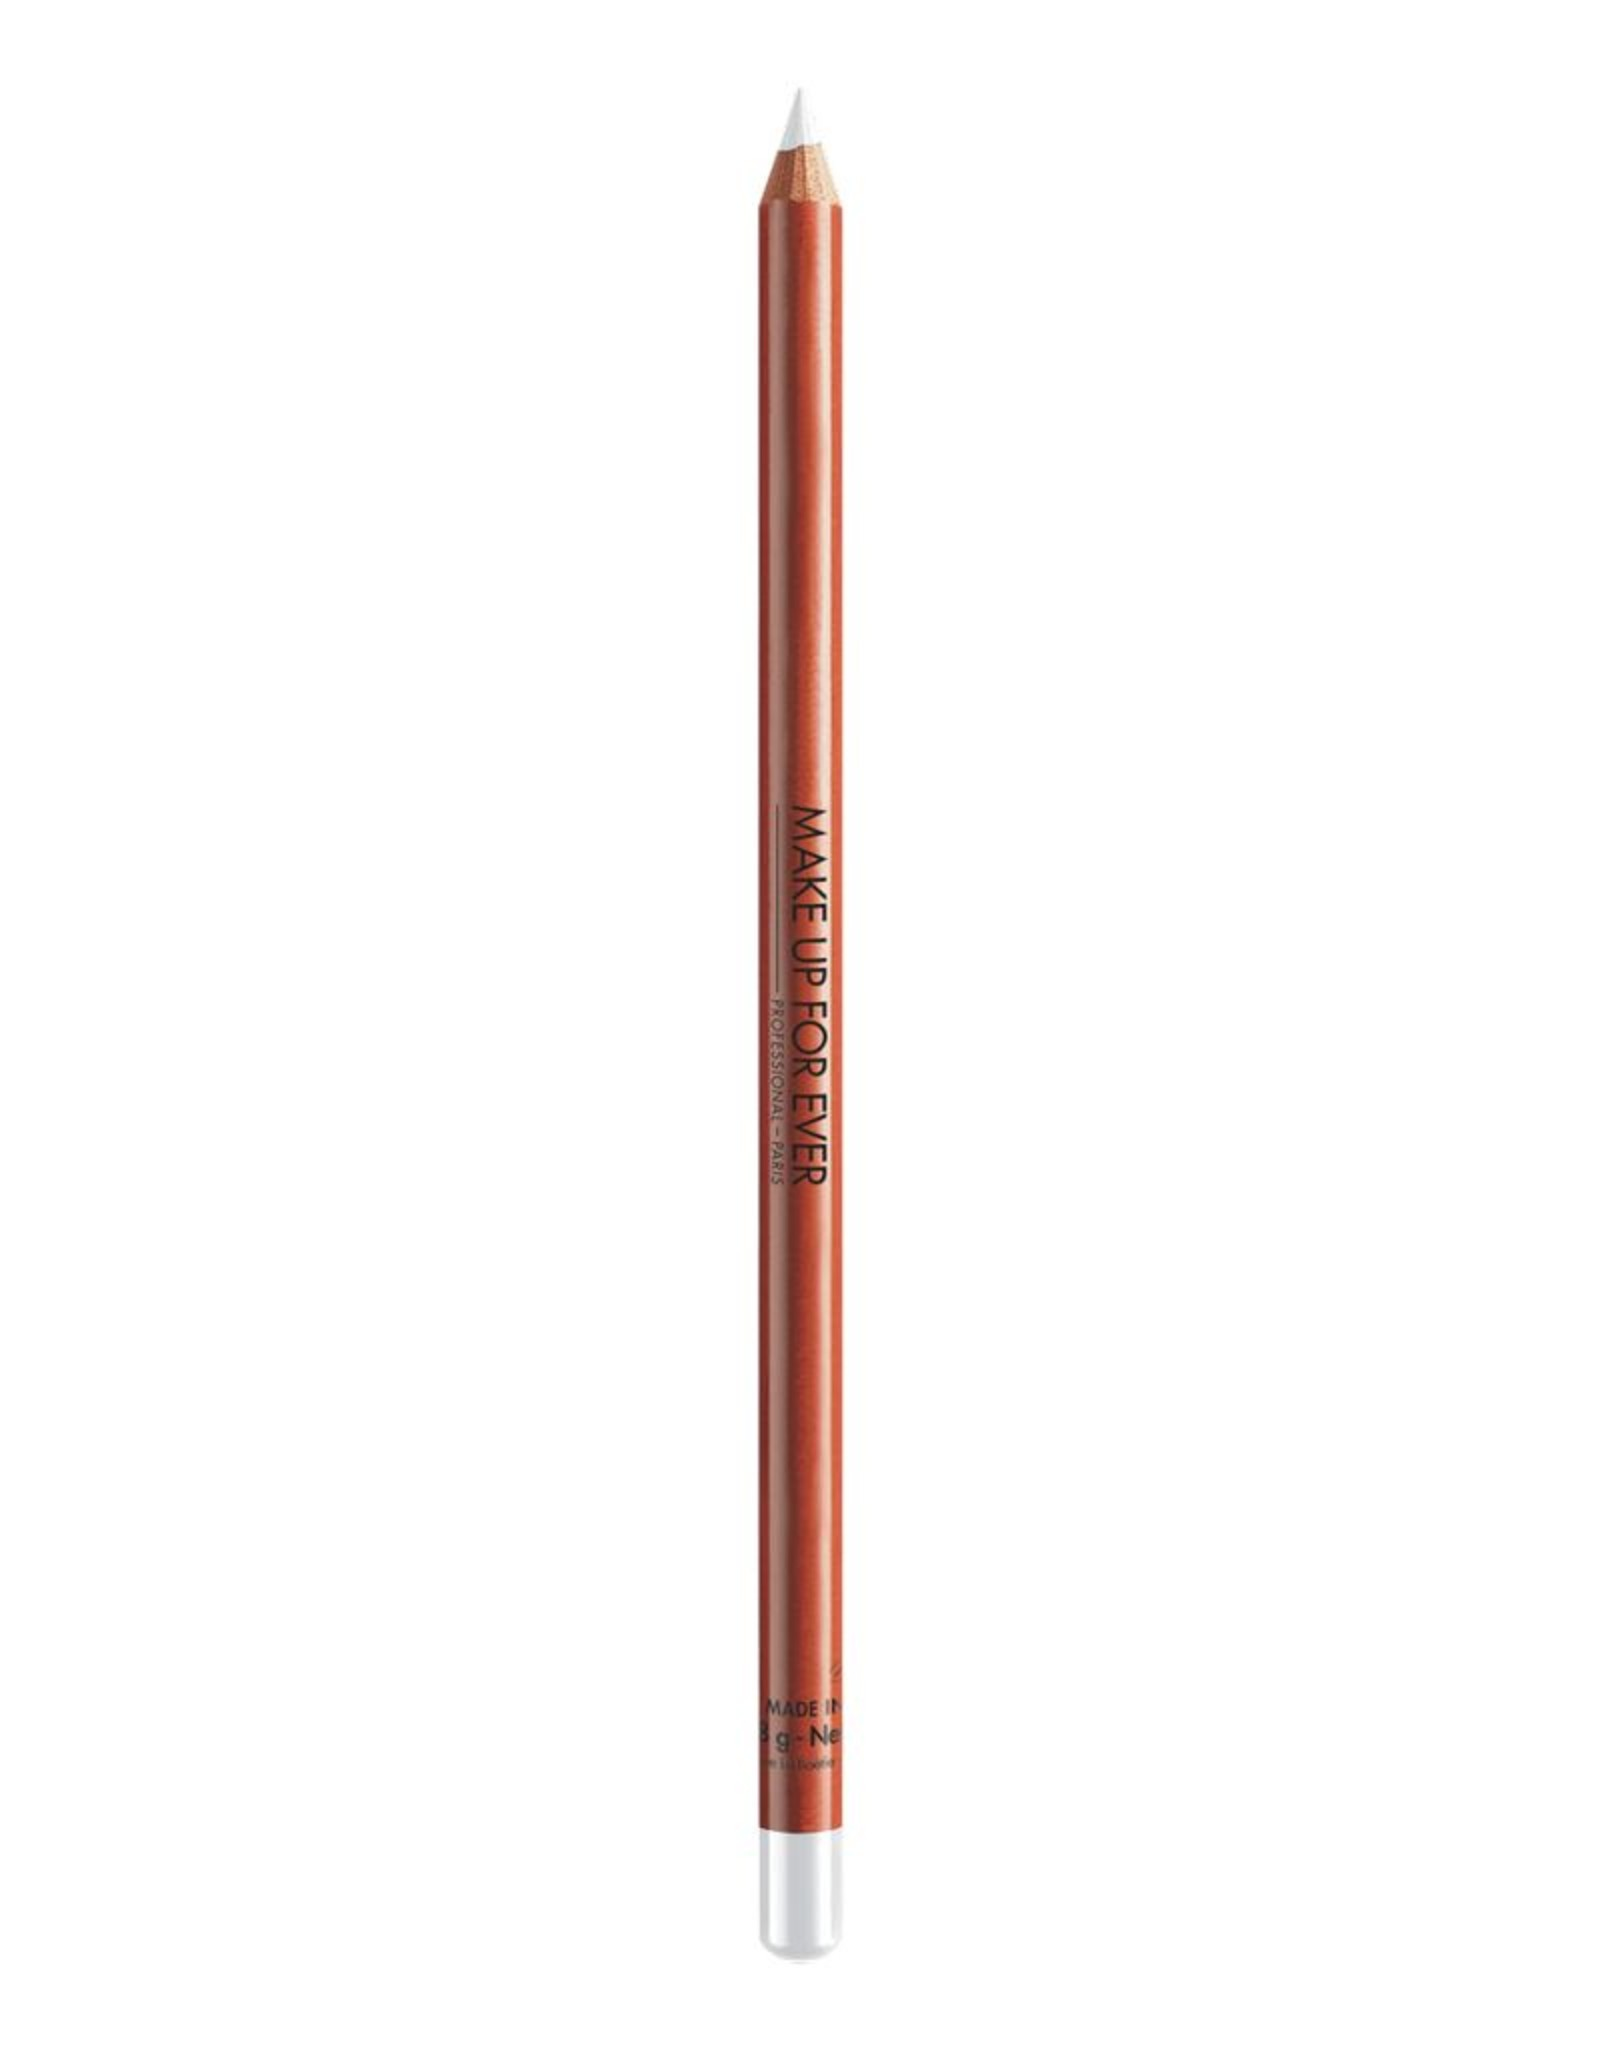 MUFE CRAYON YEUX 1,8gN0 blanc  /  white